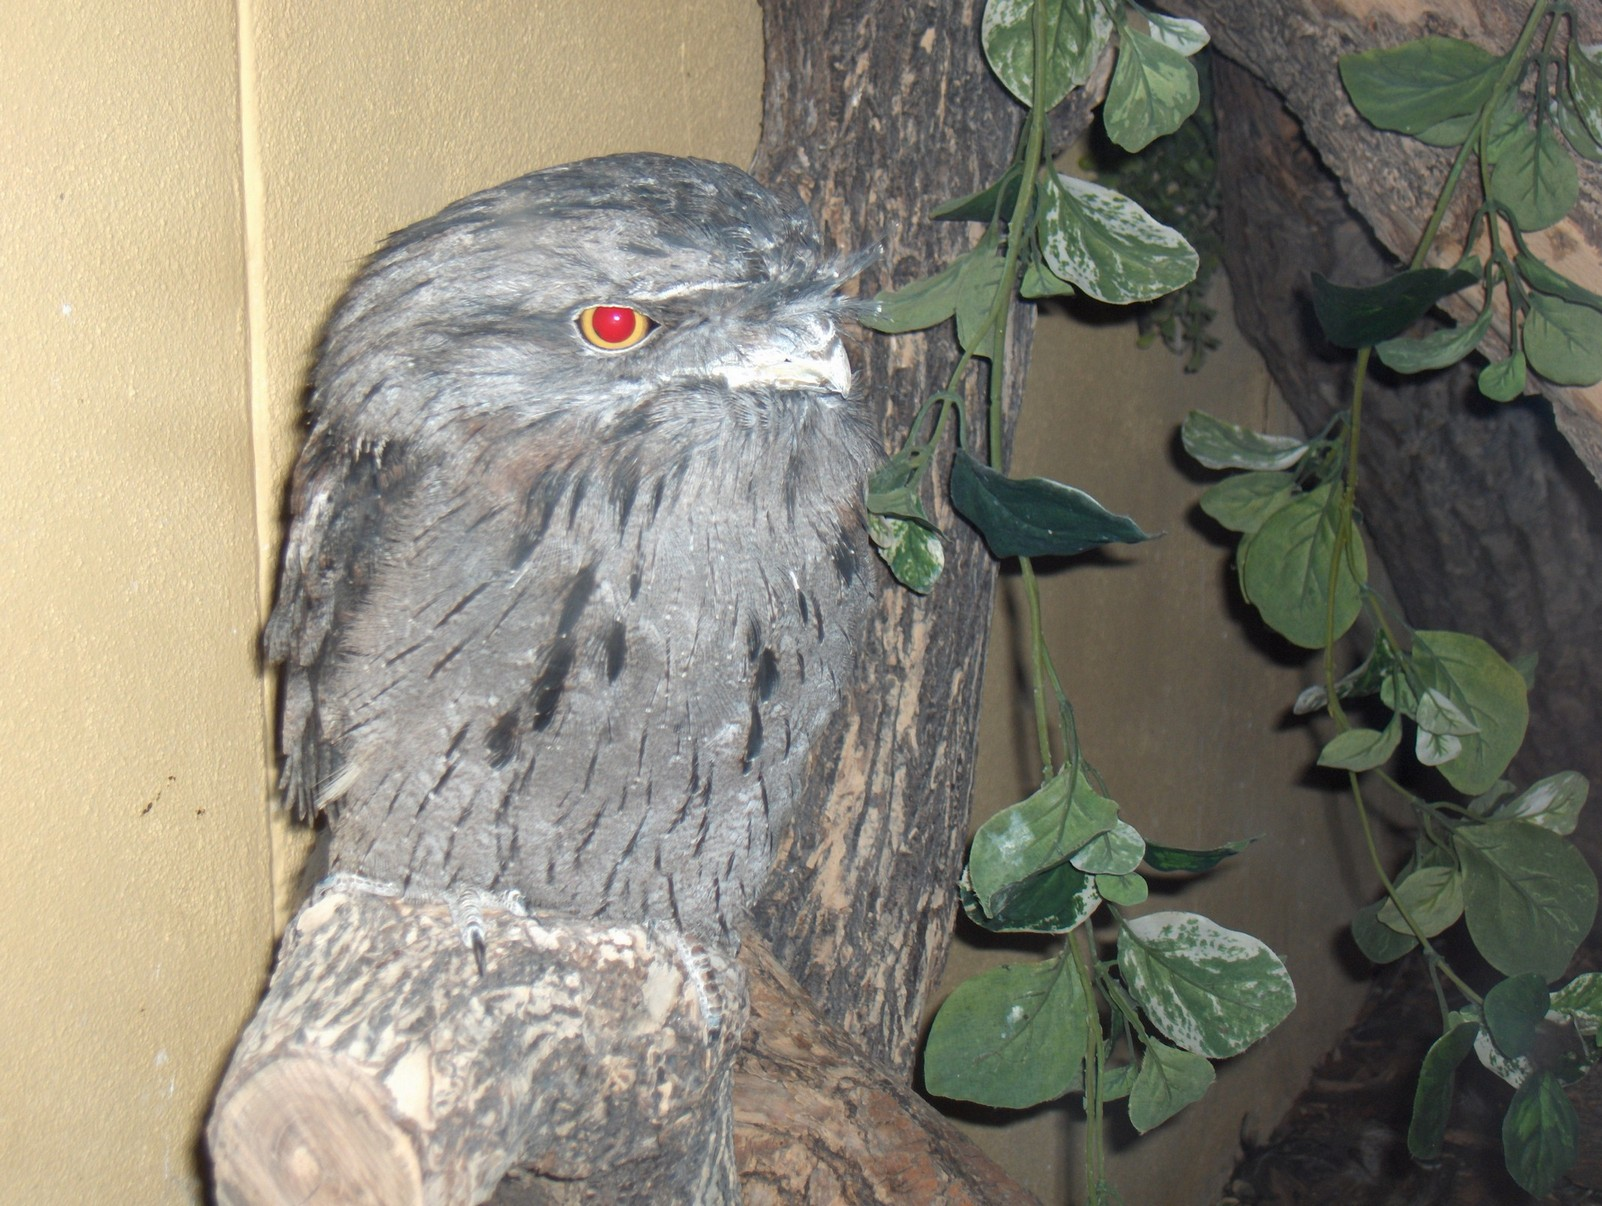 https://upload.wikimedia.org/wikipedia/commons/e/e3/Tawny_frogmouth_denver.jpg